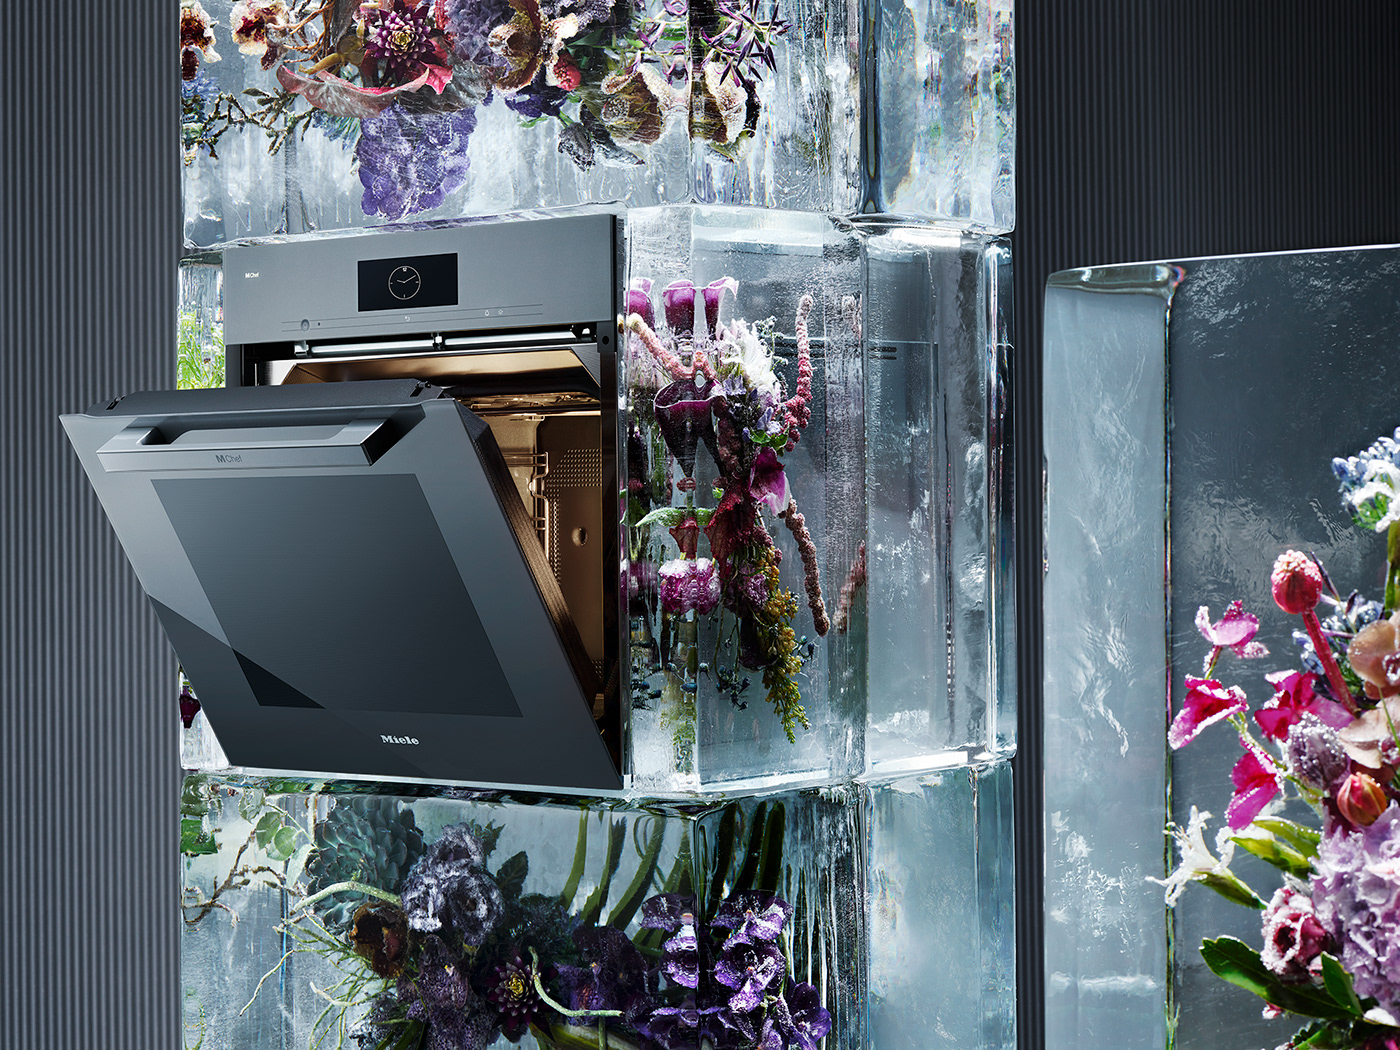 Flowers,water,ovens,art,kitchen,appliance,Nature,installation,colour,Technology